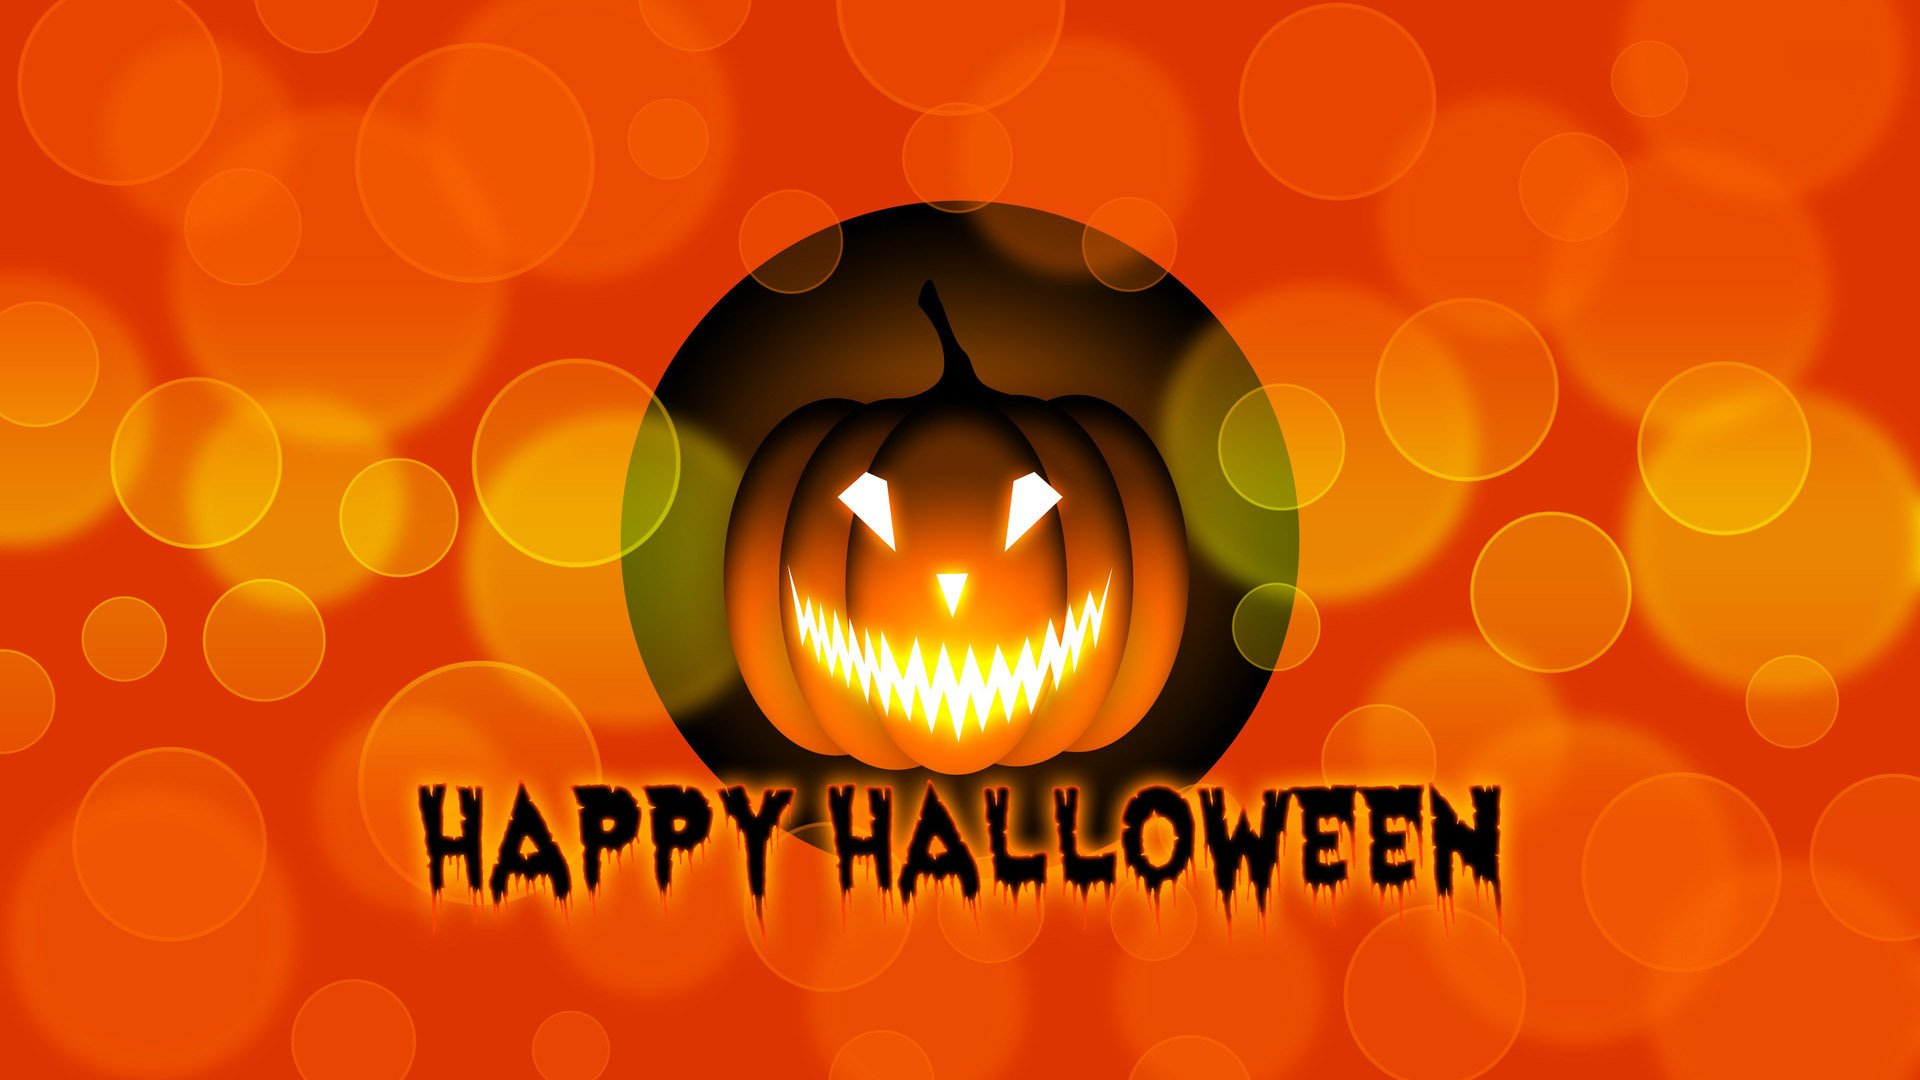 Download Happy Halloween Wallpaper 2016 40165 Wallpaper 1920x1080